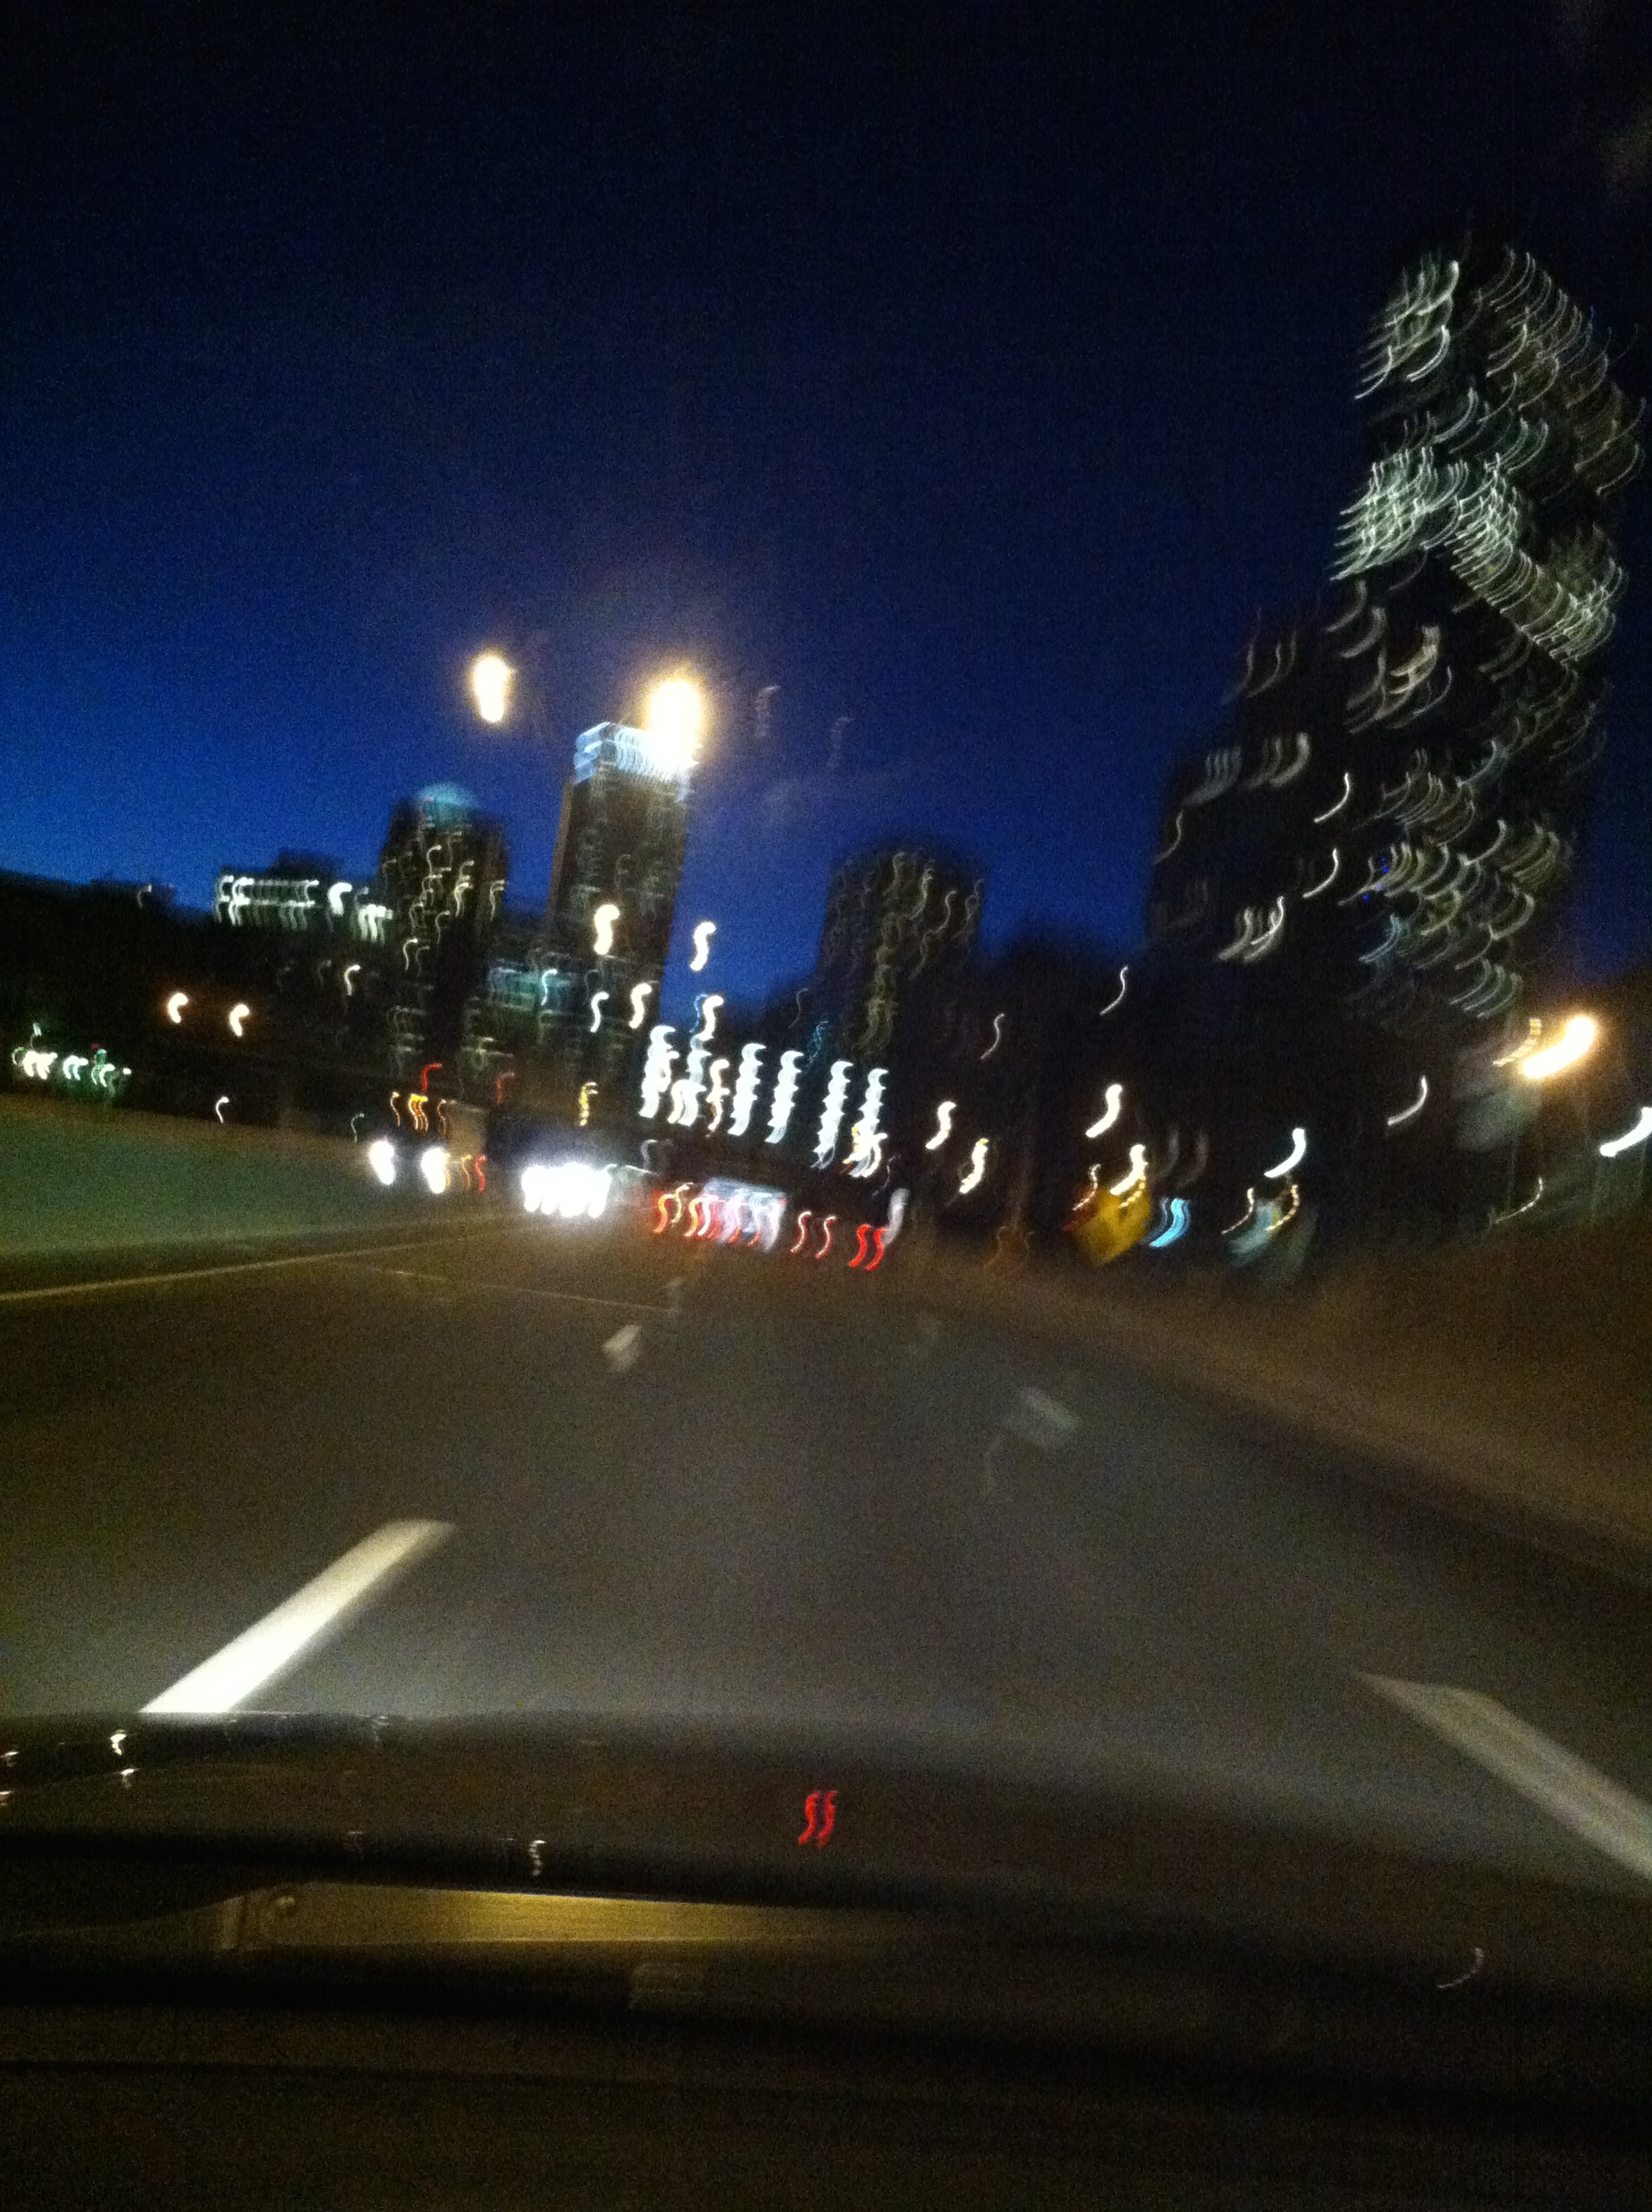 Driving home on the Massachusetts Turnpike after a long day at the studio.